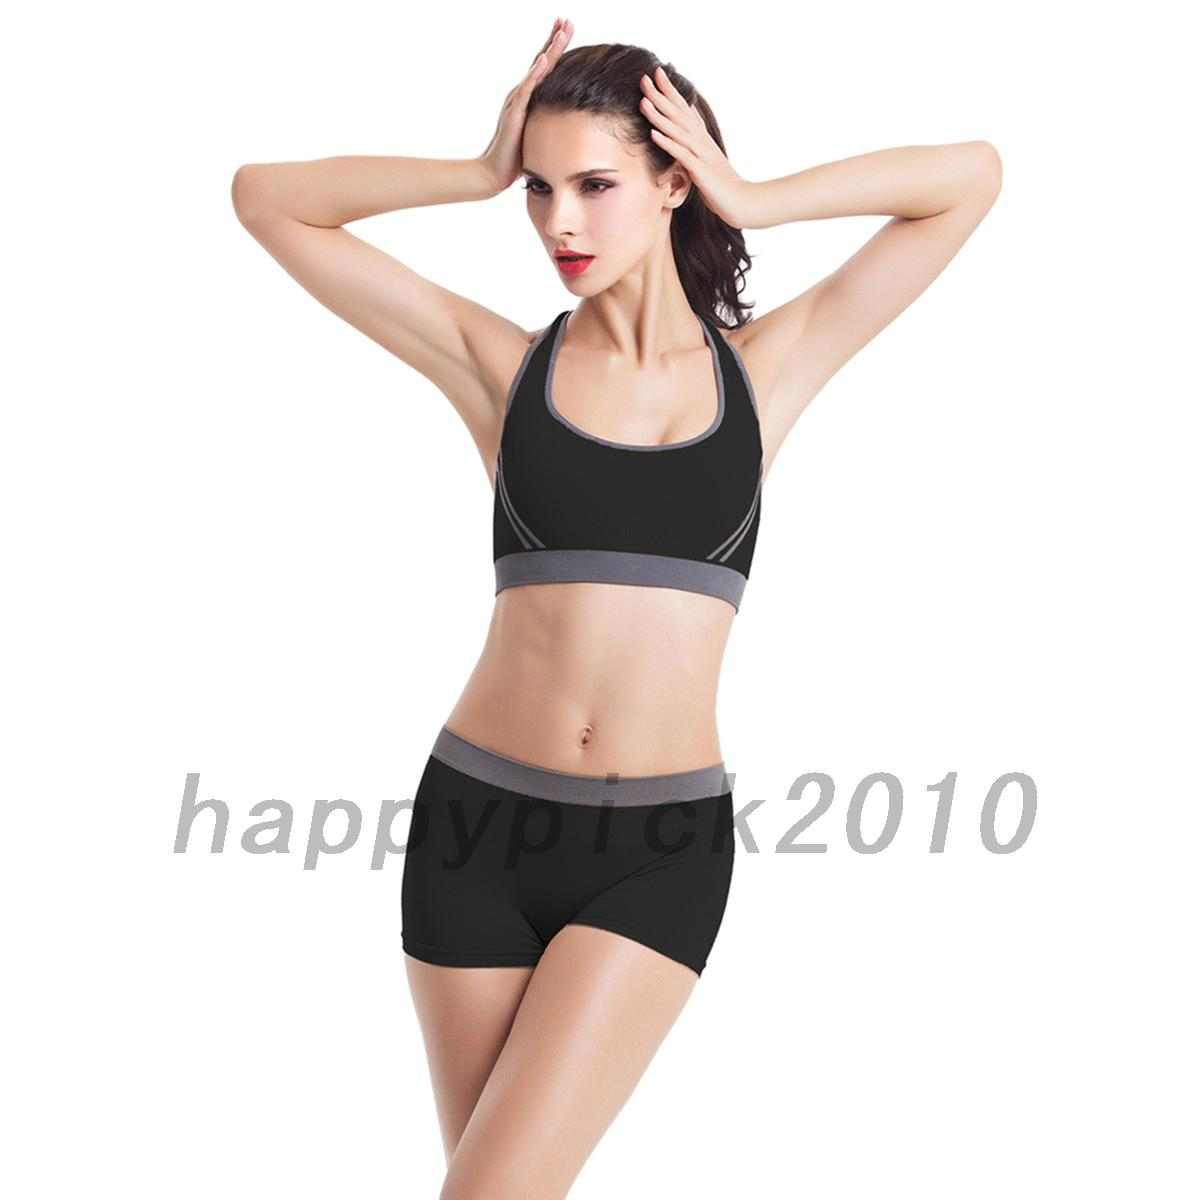 Find the best selection of cheap sports bra shorts set in bulk here at ampleaec.cf Including polyester sports bra and thin sports bra at wholesale prices from sports bra shorts set manufacturers. Source discount and high quality products in hundreds of categories wholesale direct from China.